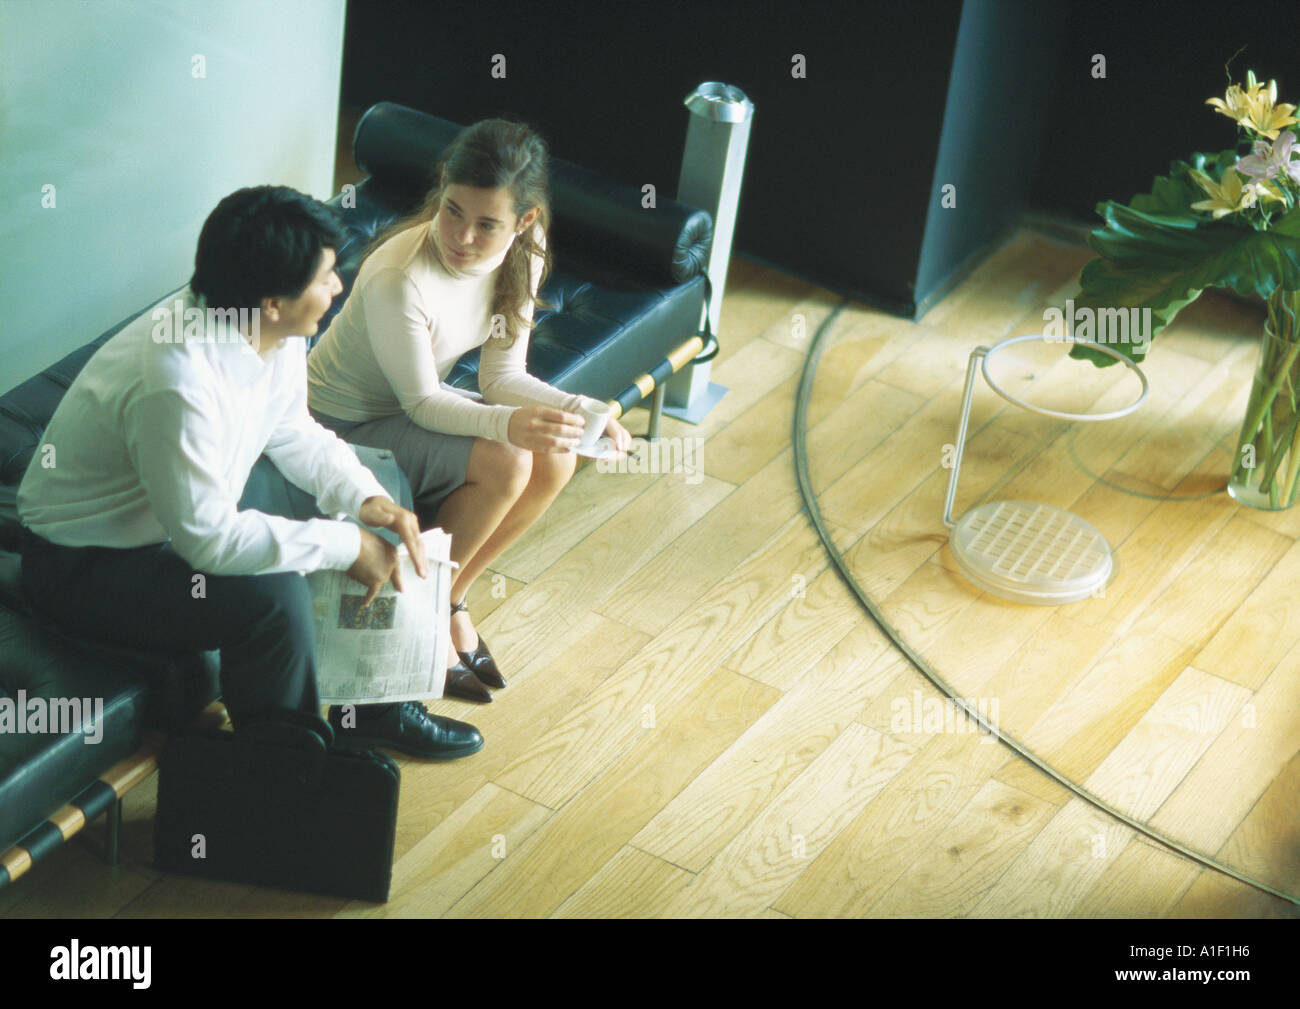 Man and woman sitting on bench in lobby, high angle view - Stock Image